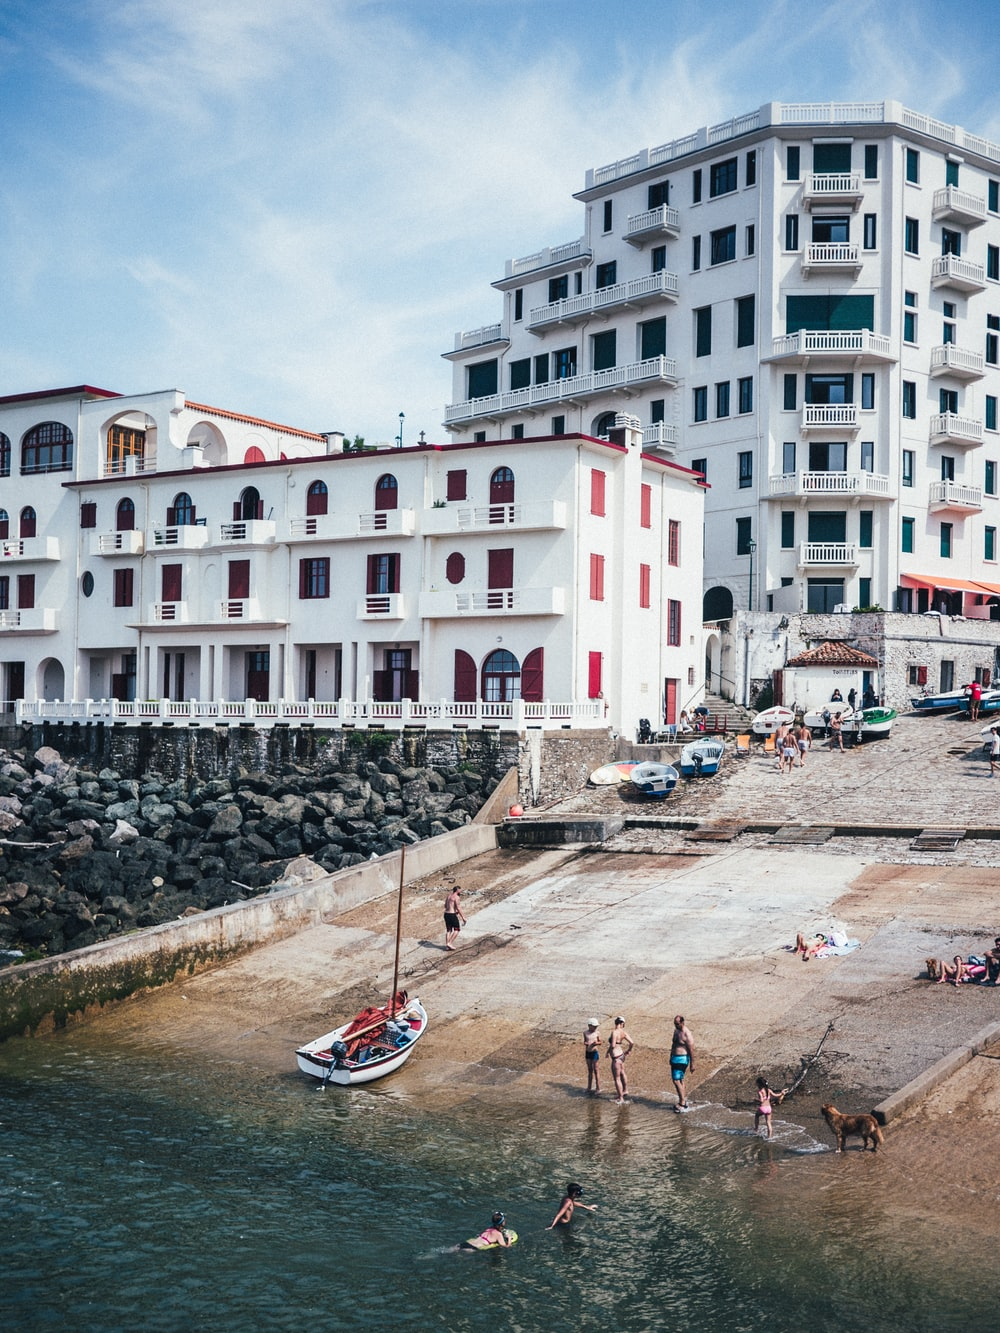 people by the beach near high rise buildings during daytime